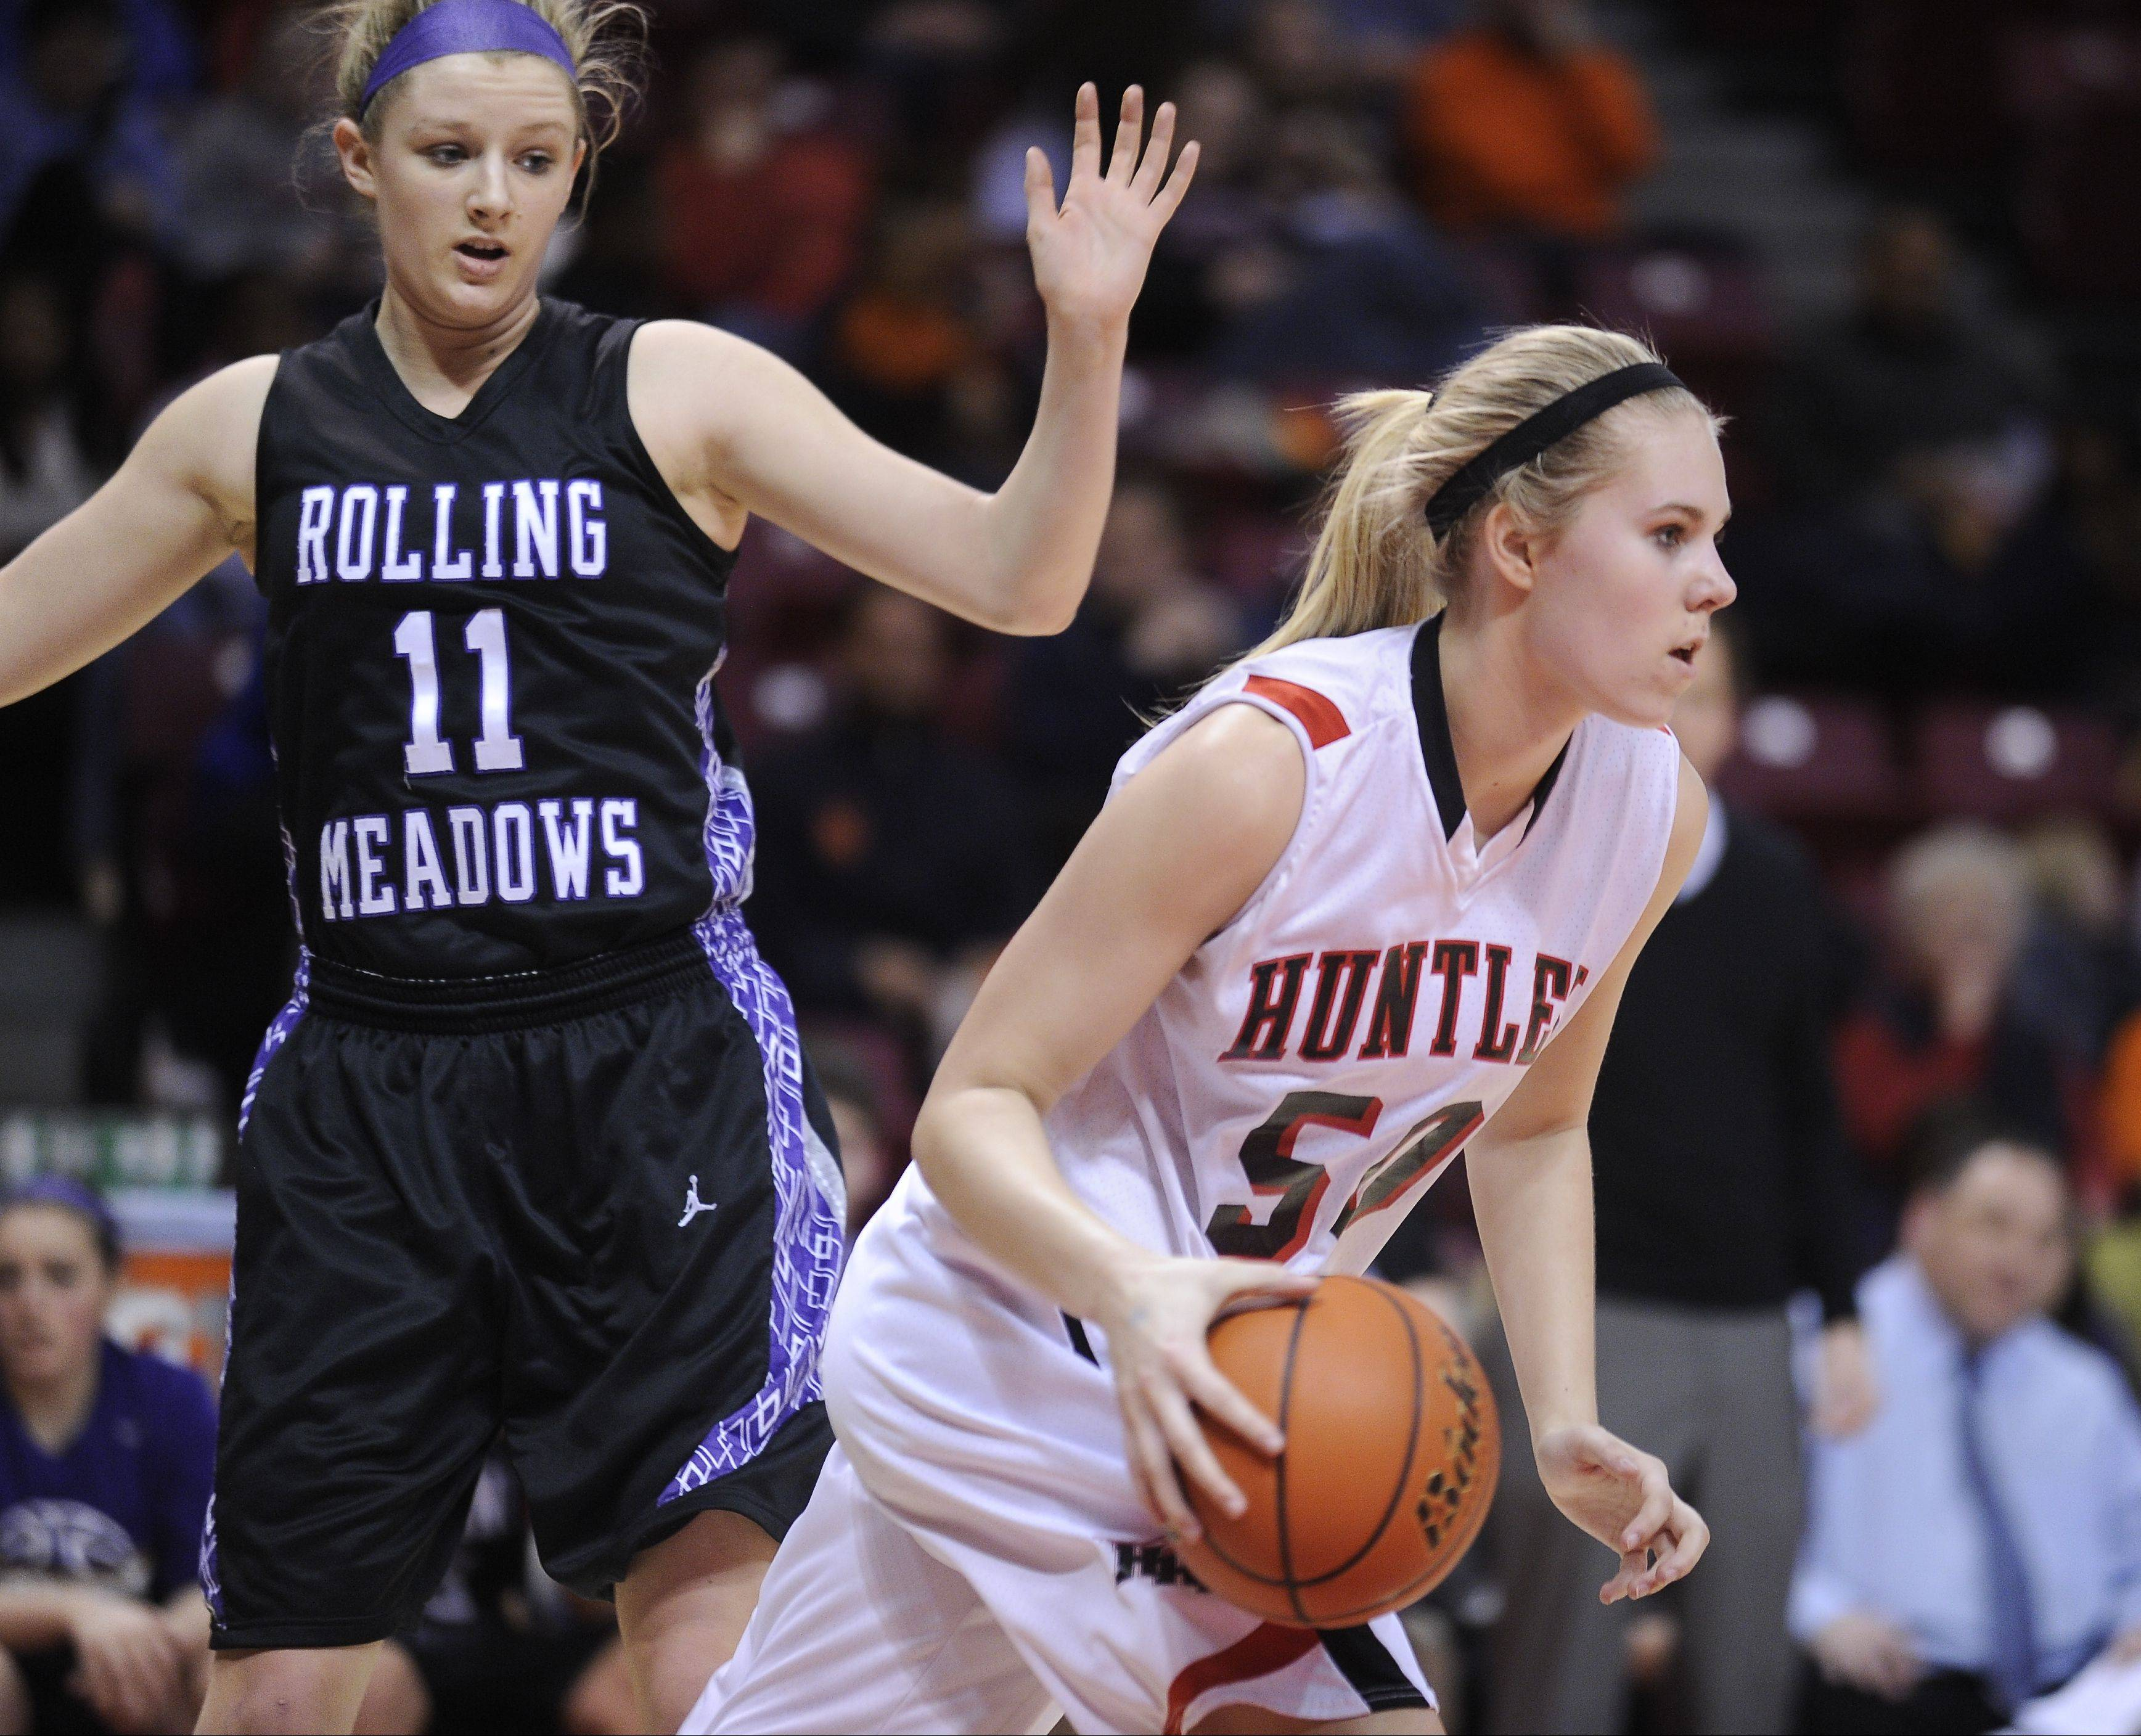 Huntley sophomore Ali Andrews moves with the basketball against Rolling Meadows during the Class 4A state semifinals at Redbird Arena last season.